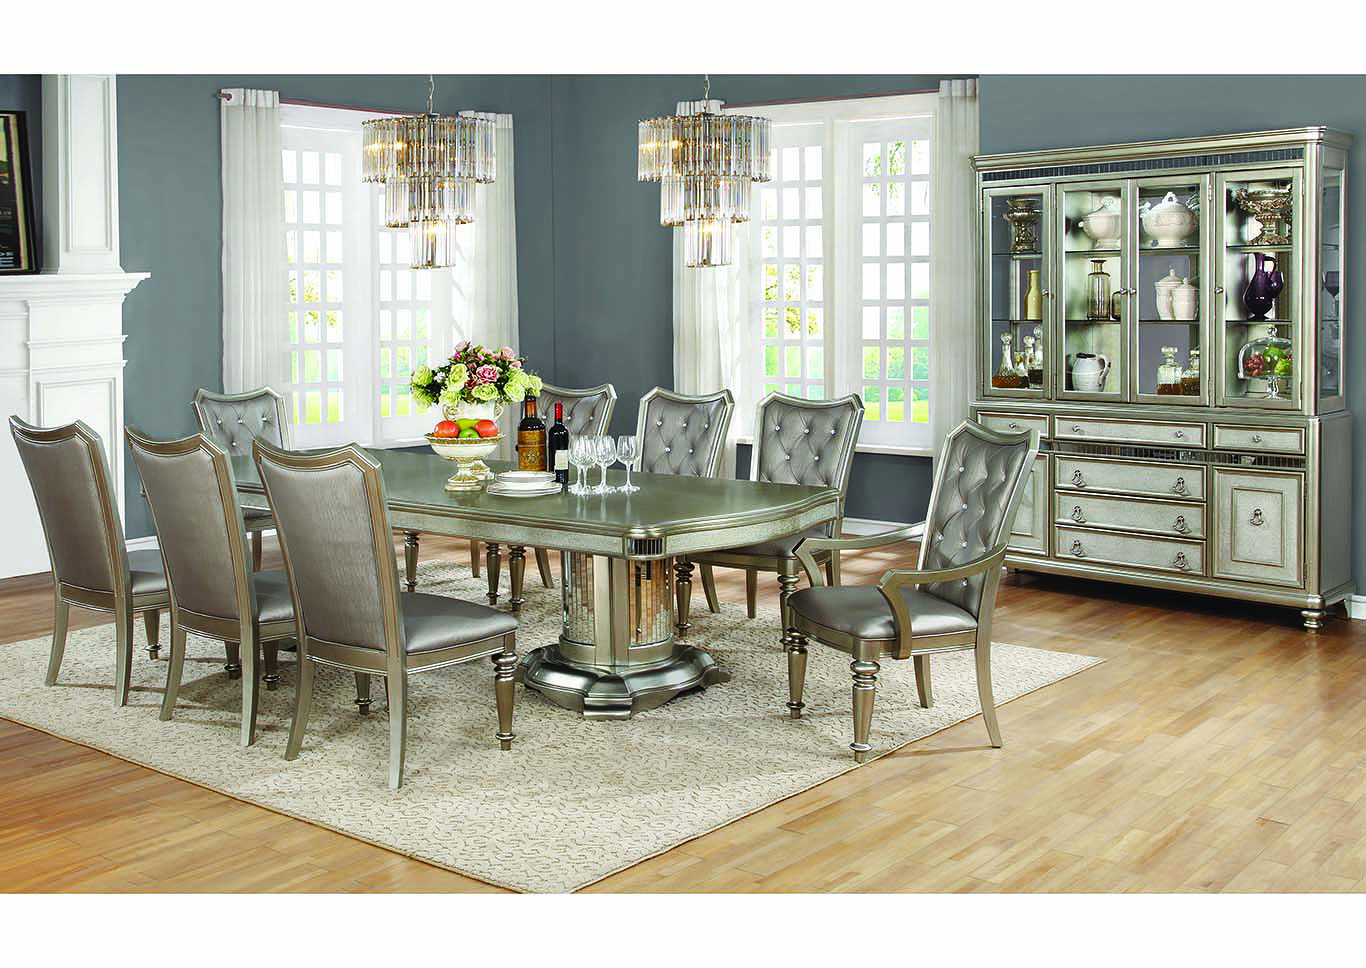 Metallic Platinum Dining Table W 2 Arm Chairs And 6 Side ChairsCoaster Furniture